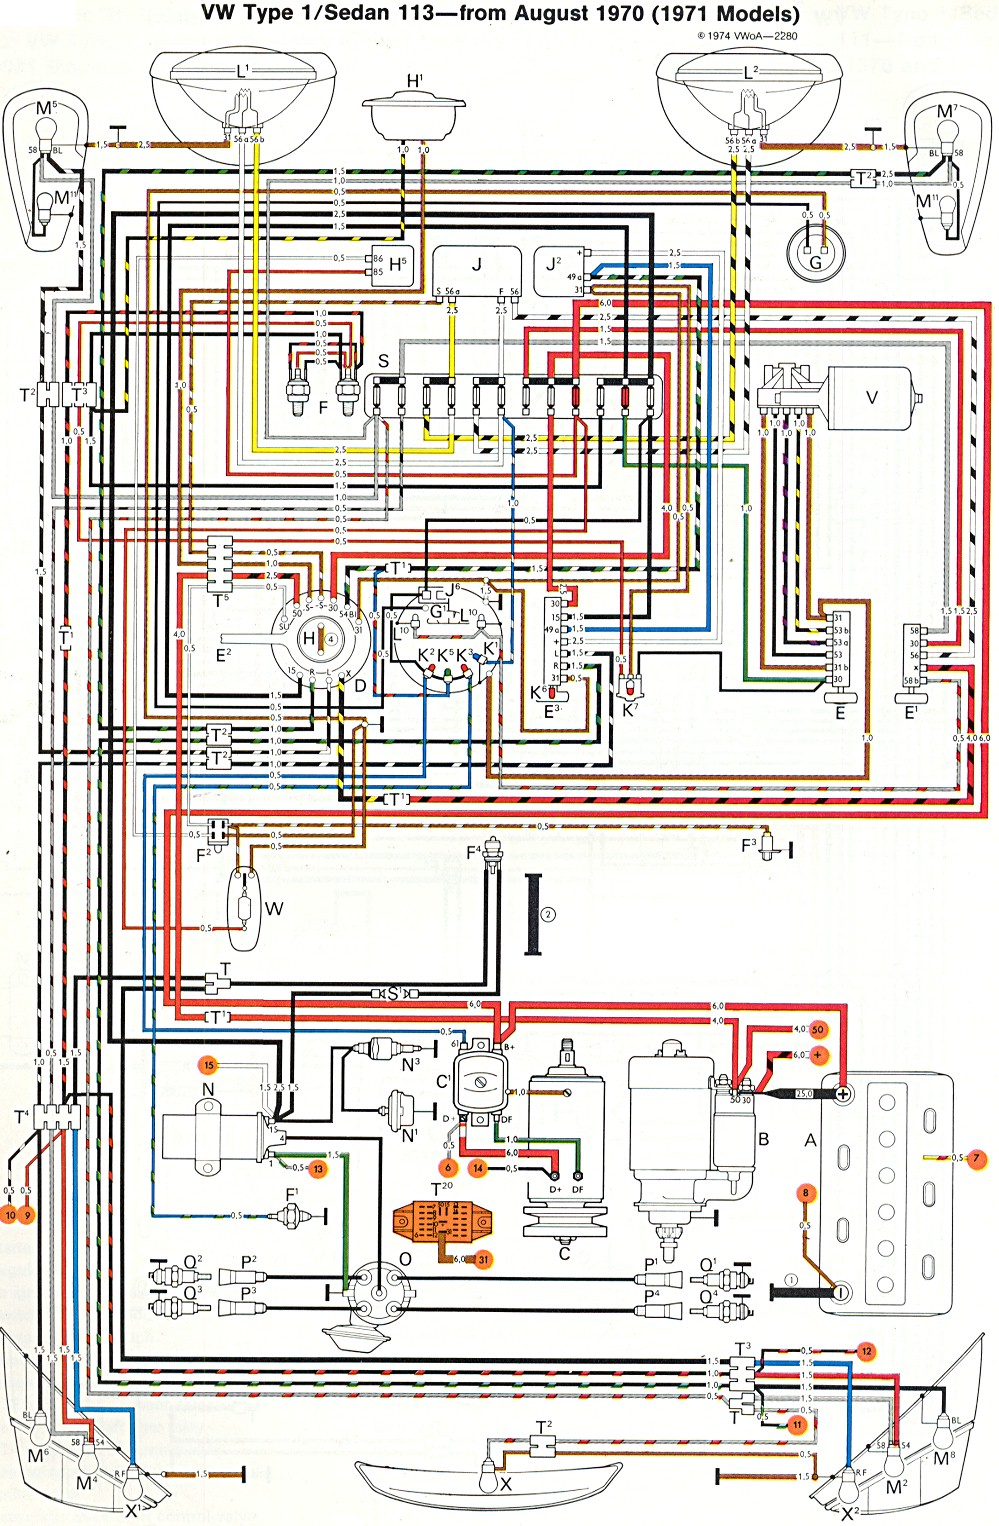 74 Vw Bug Wiring Diagram Great Design Of Bass Tracker 170 Chart 1971 Super Beetle Thegoldenbug Com 1974